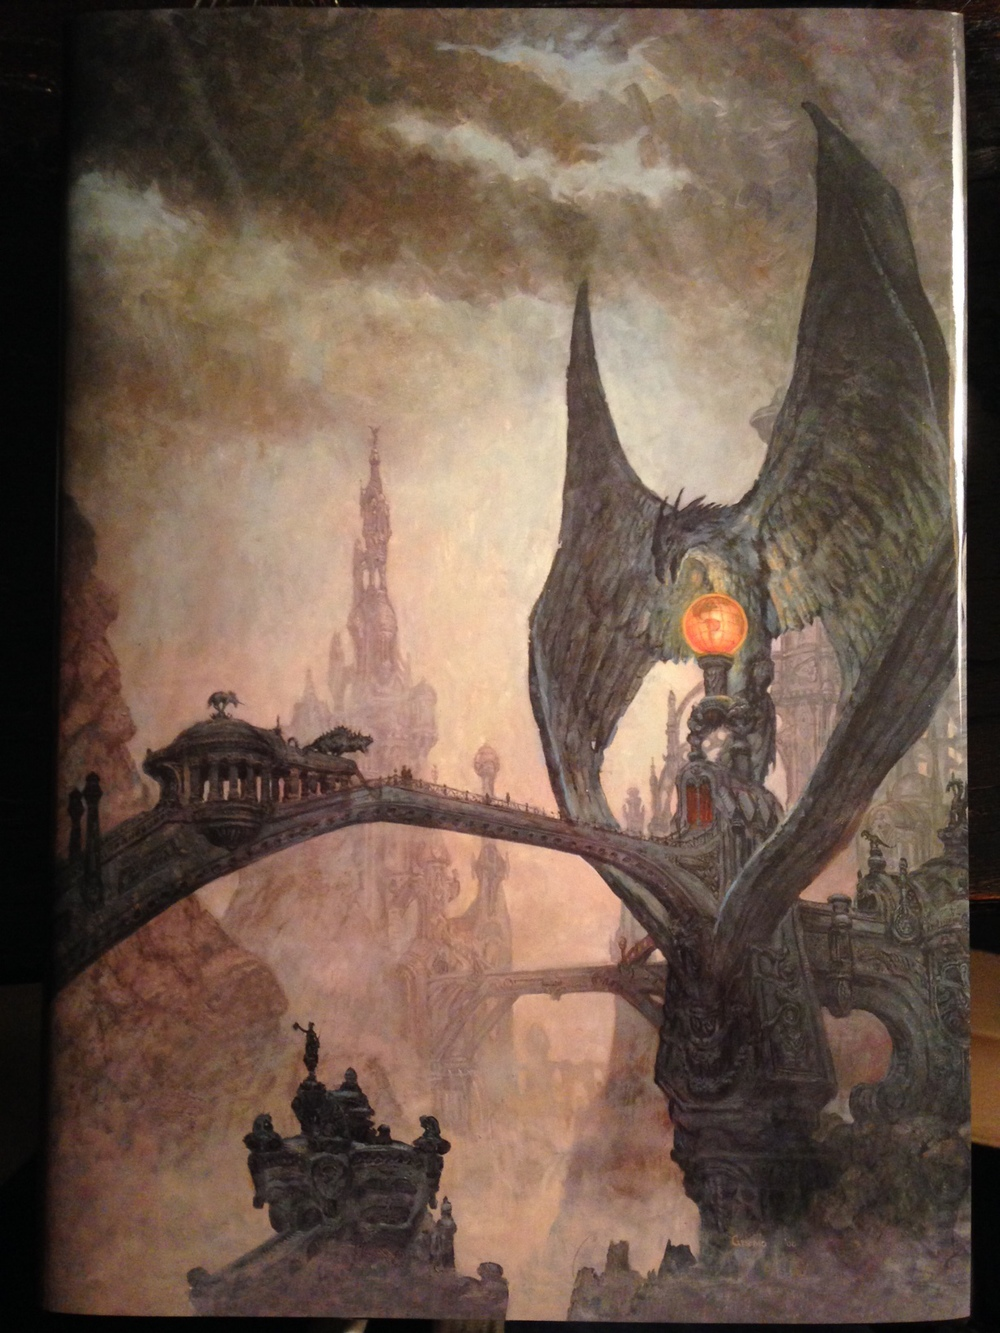 Dust jacket from Harlan Ellison's  Deathbird Stories